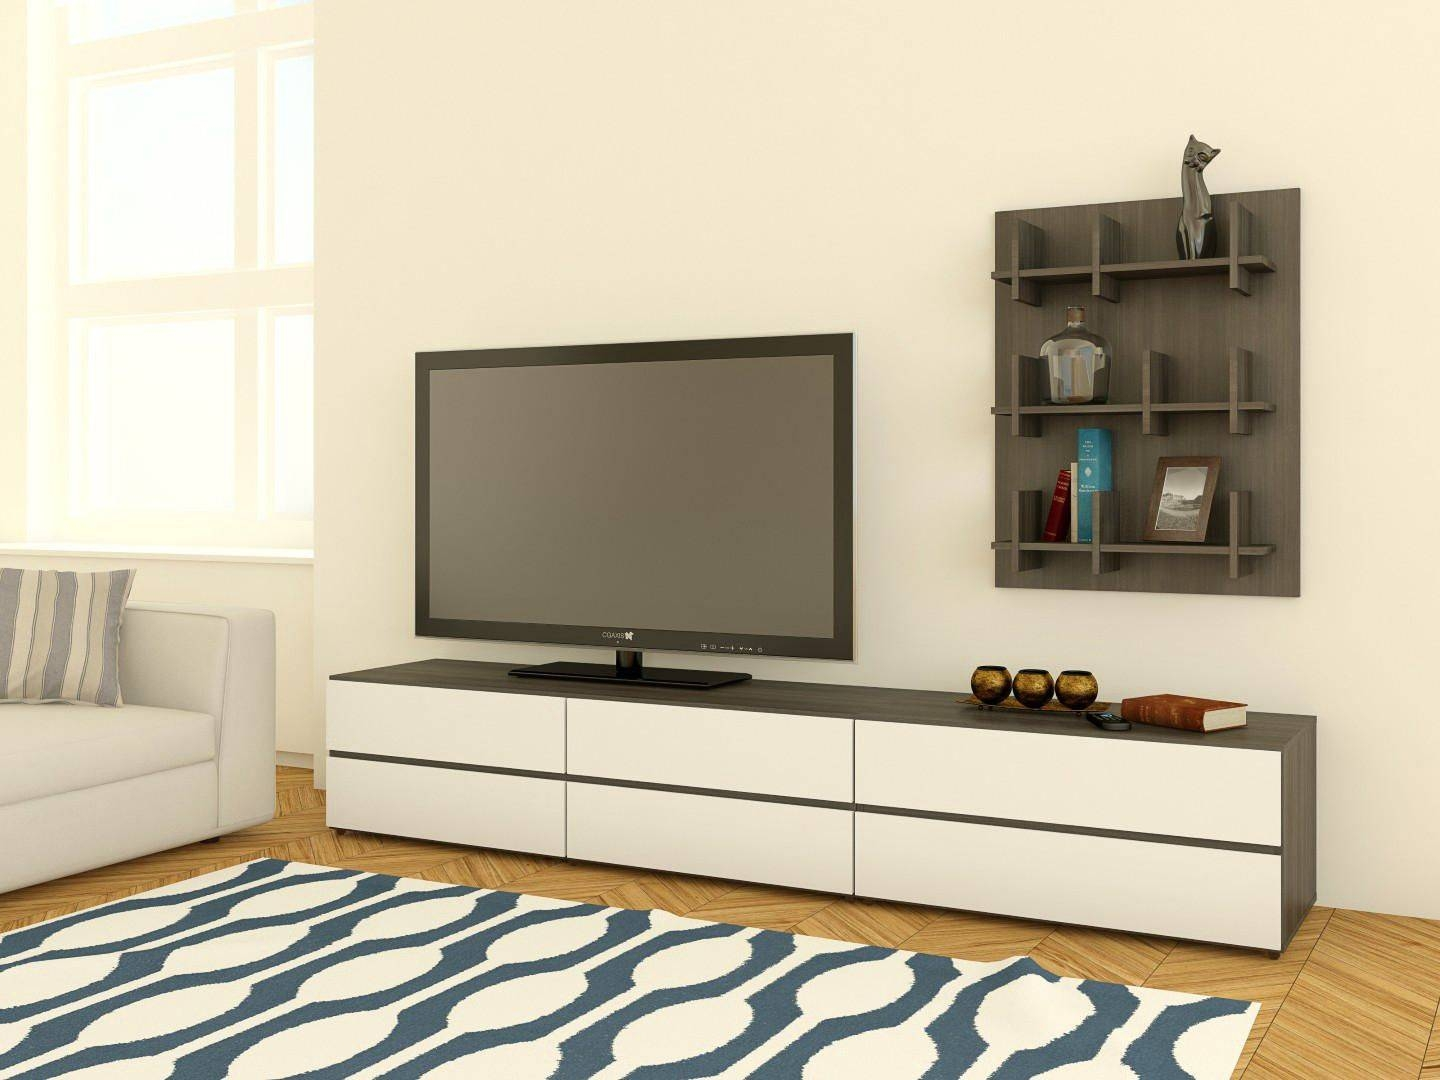 Nexera Allure Tv Stand With Drop Down Door | Walmart Canada Pertaining To Nexera Tv Stands (Photo 10 of 15)